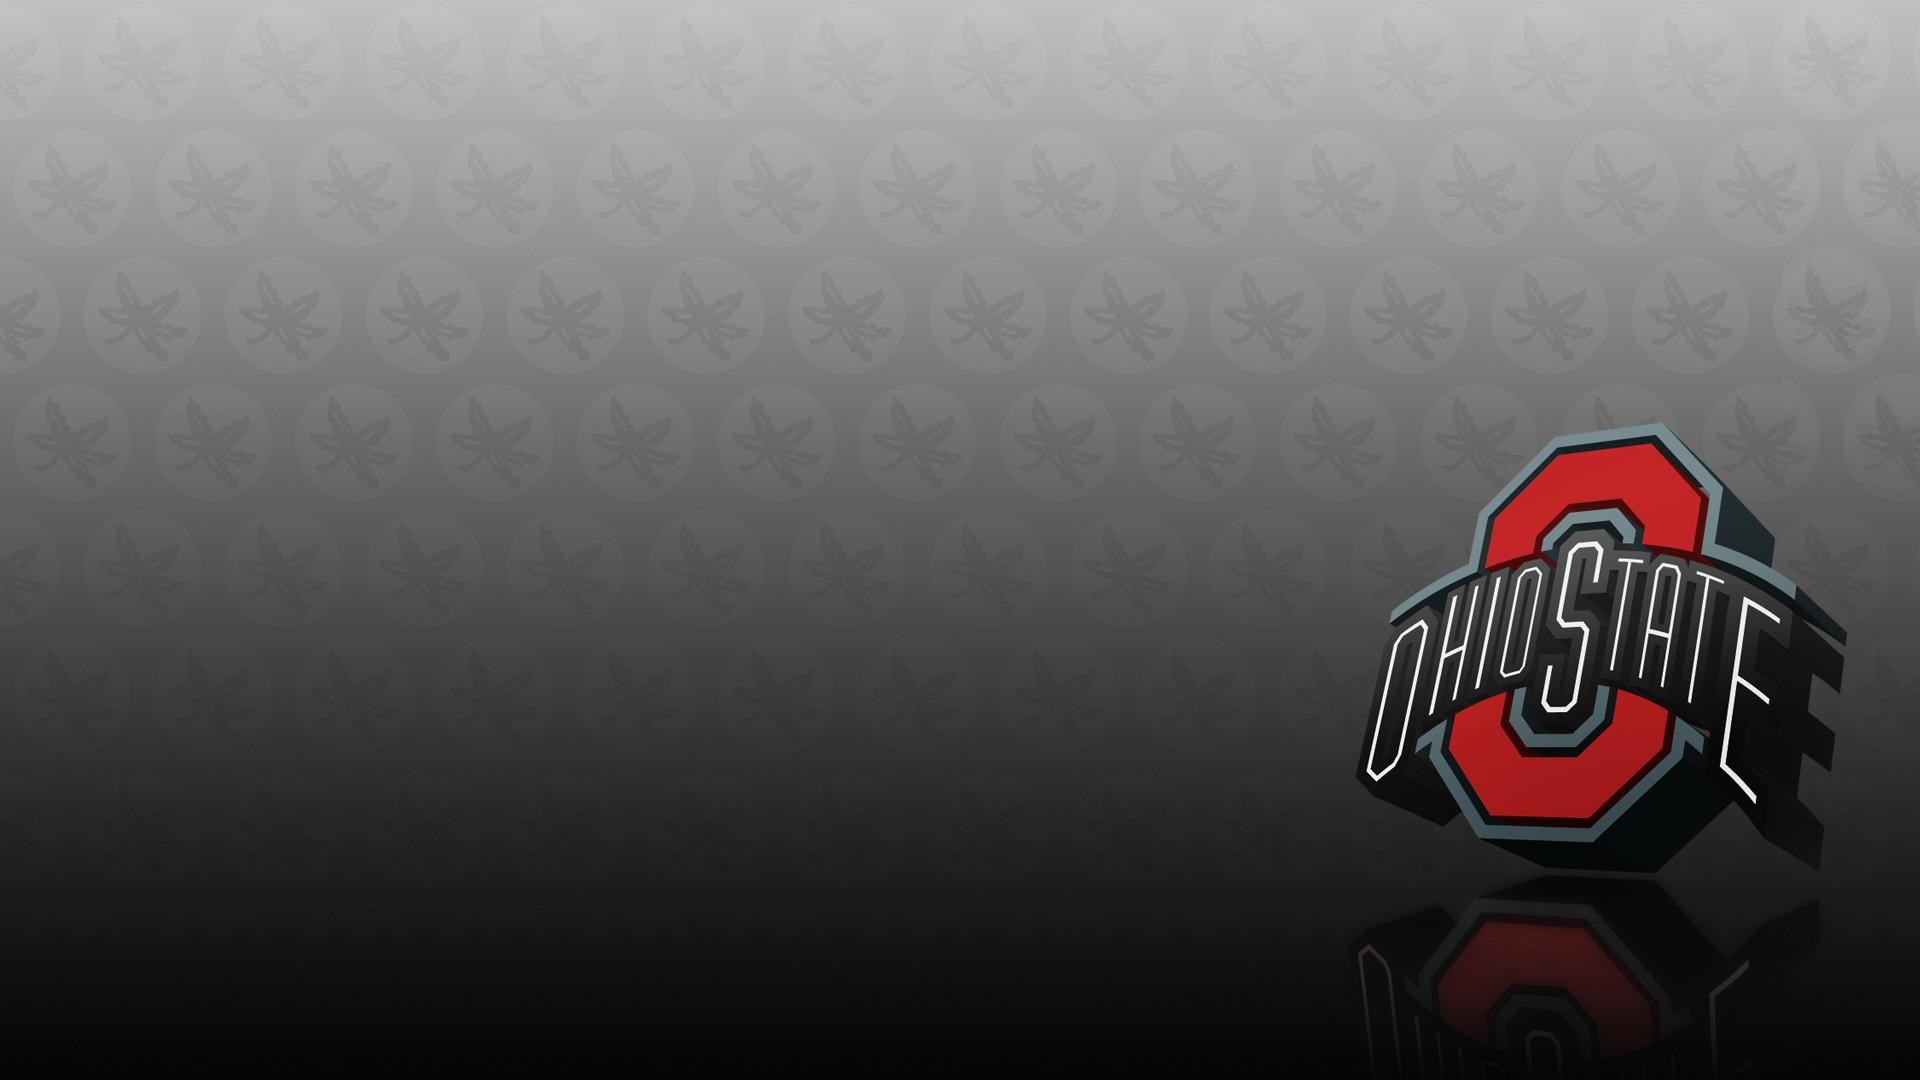 Free-Ohio-State-Buckeyes-iPhone-stall-in-seconds-wallpaper-wp2005599